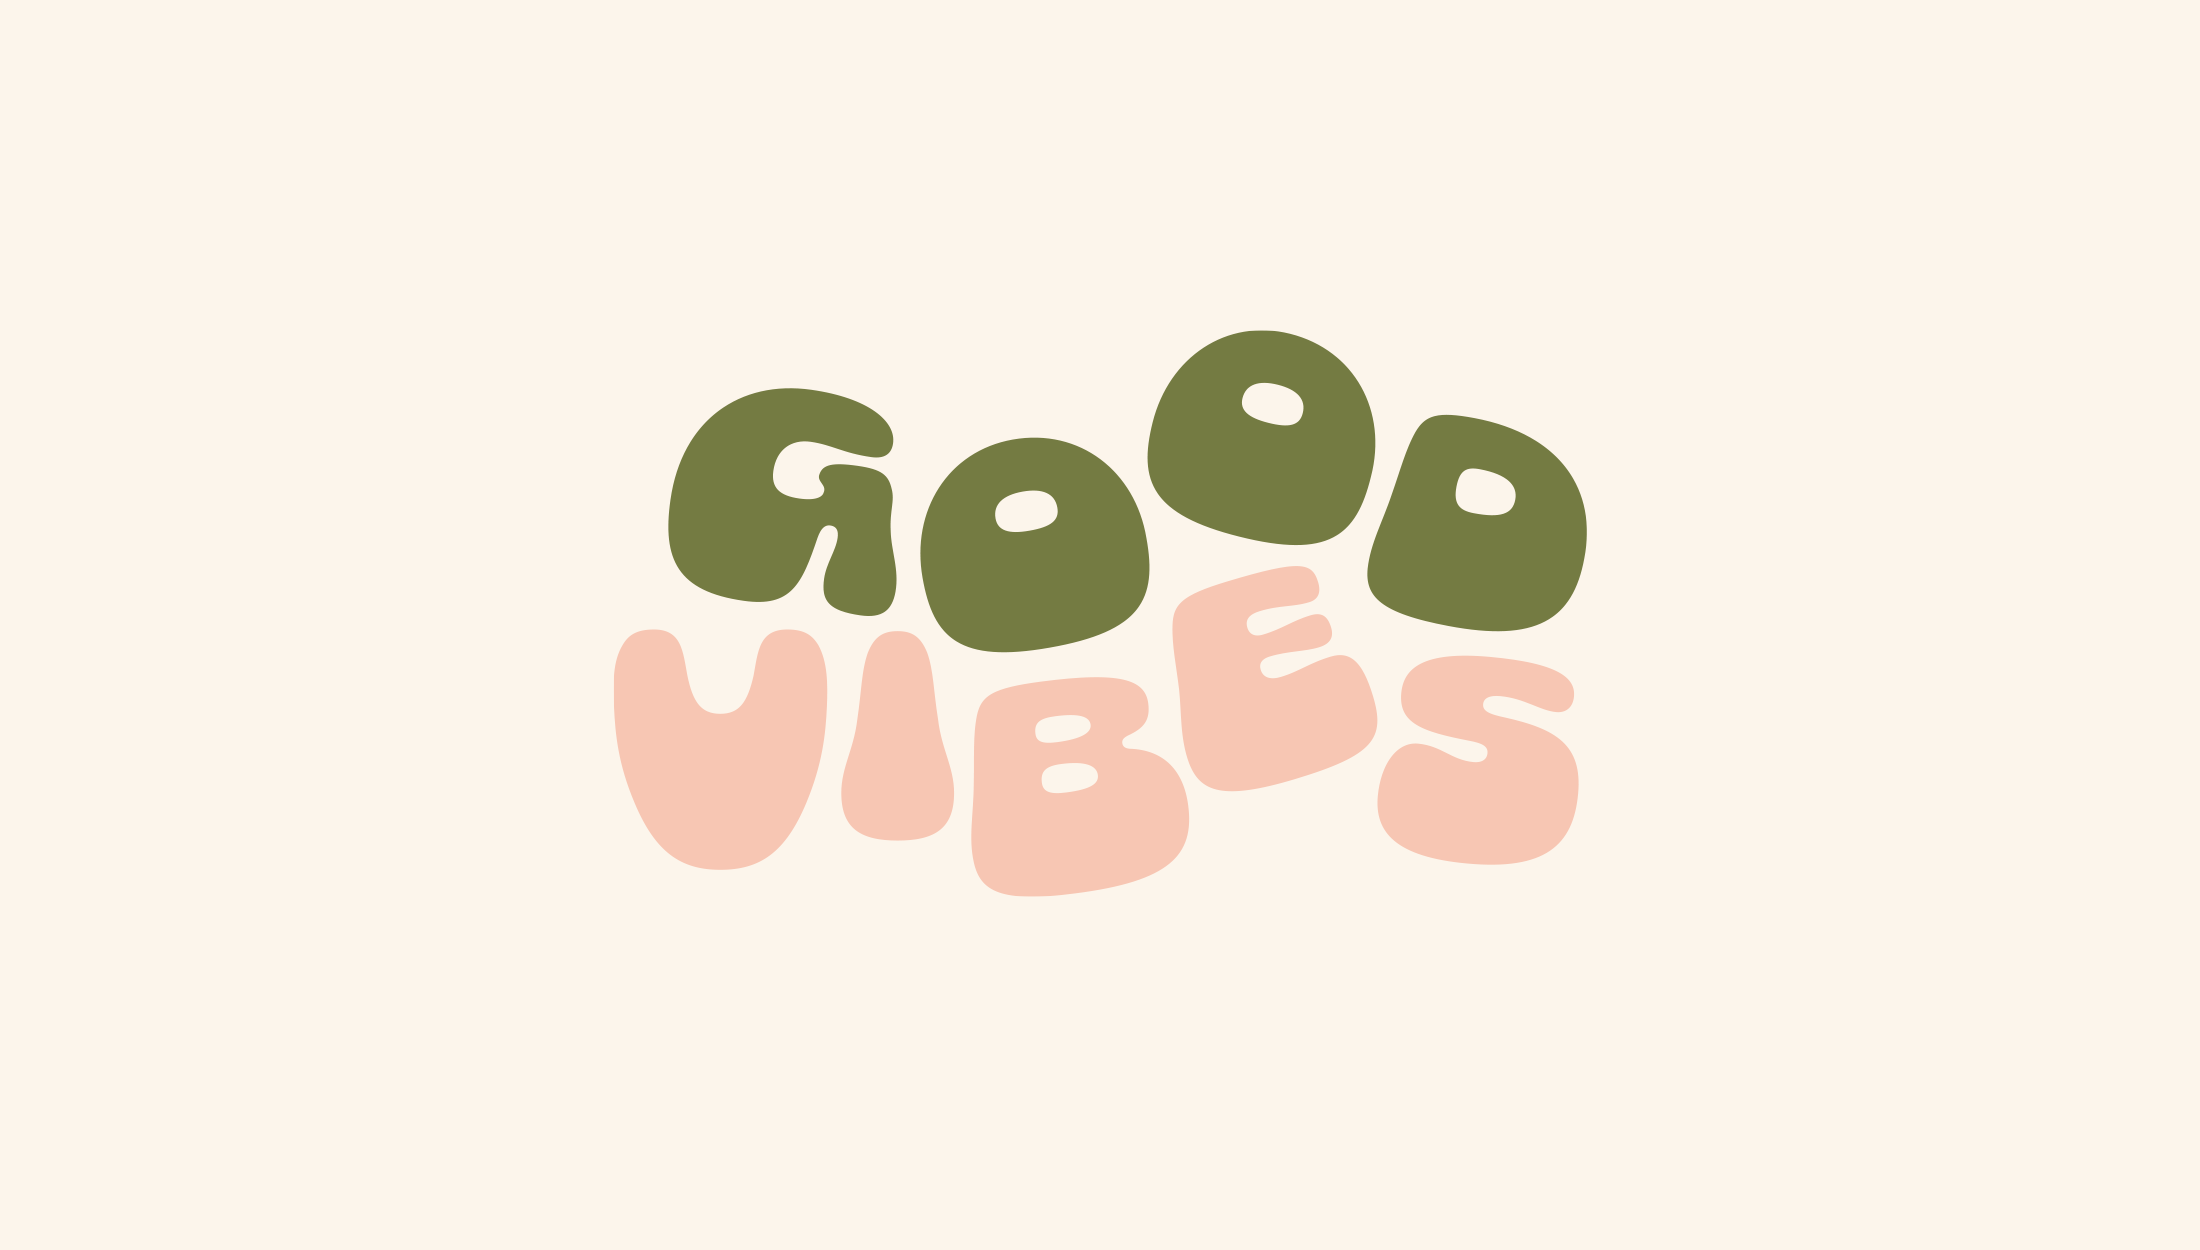 Logo design for Bobbie at Good Vibes, a mindfulness & coaching business for women within the creative & tech industries - designed by Wiltshire-based graphic designer, Kaye Huett